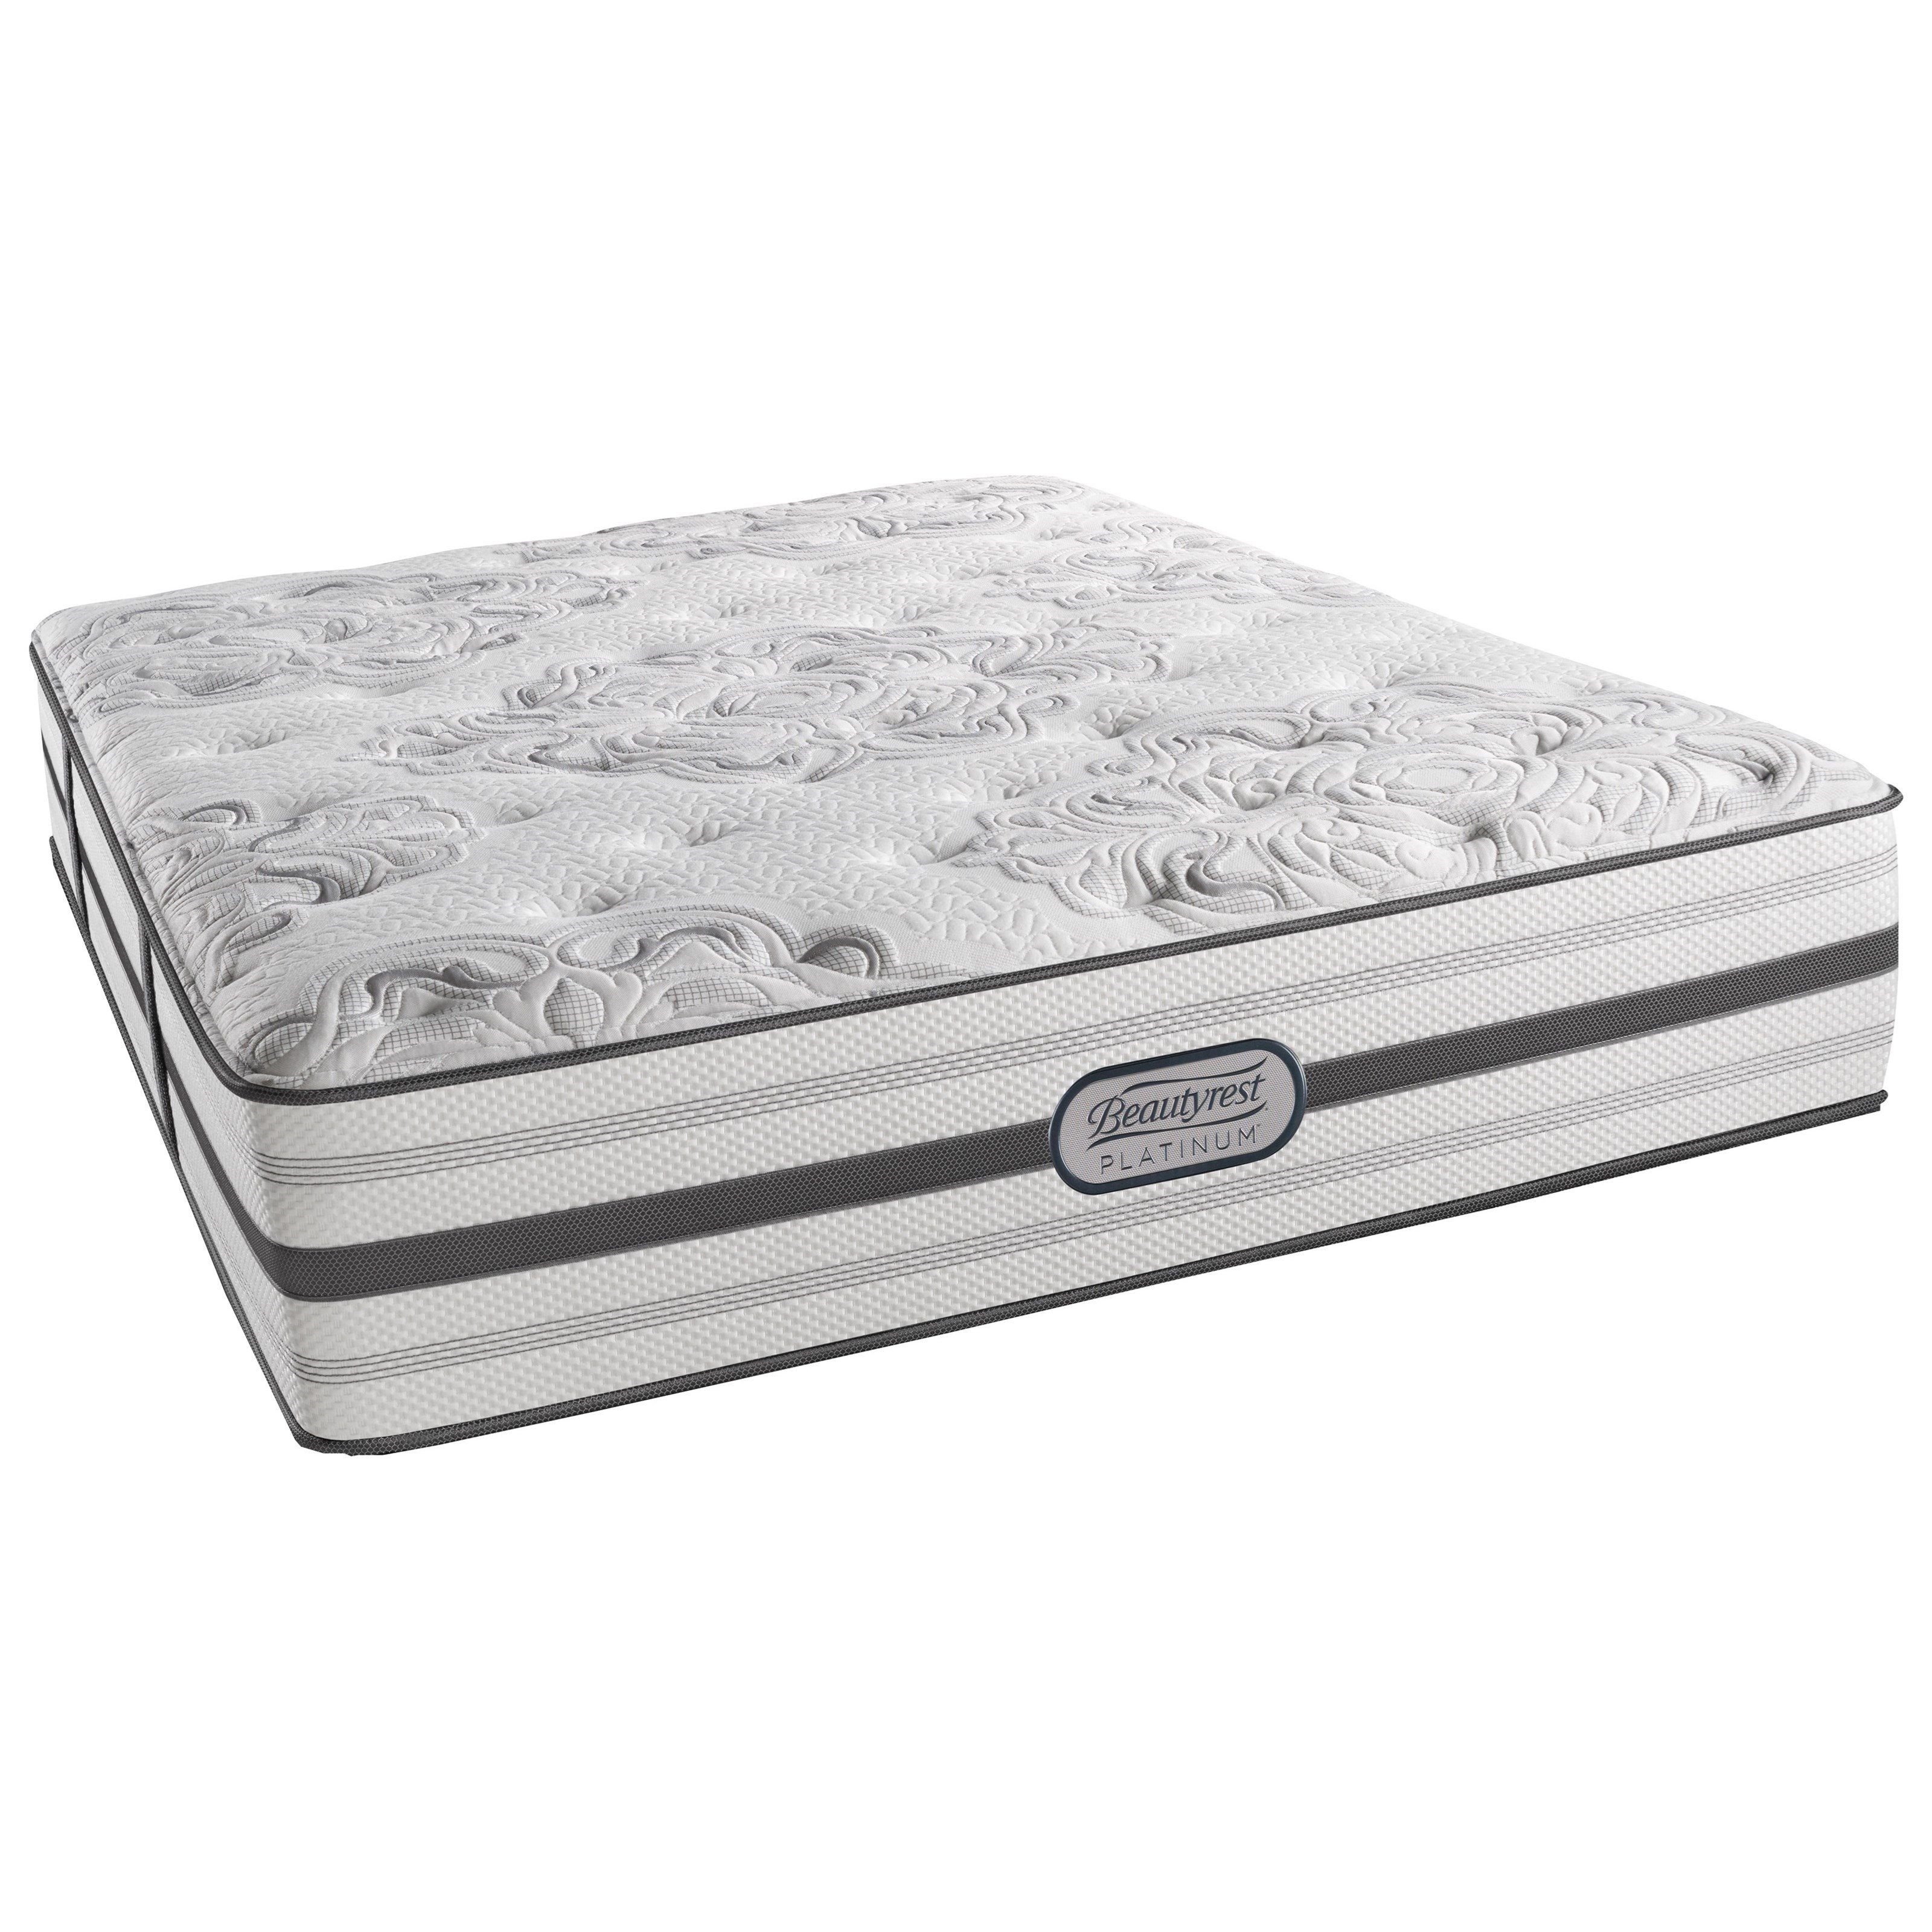 "Beautyrest Platinum Brittany Twin XL Luxury Firm 14.5"" Mattress - Item Number: LV2LFM-TXL"